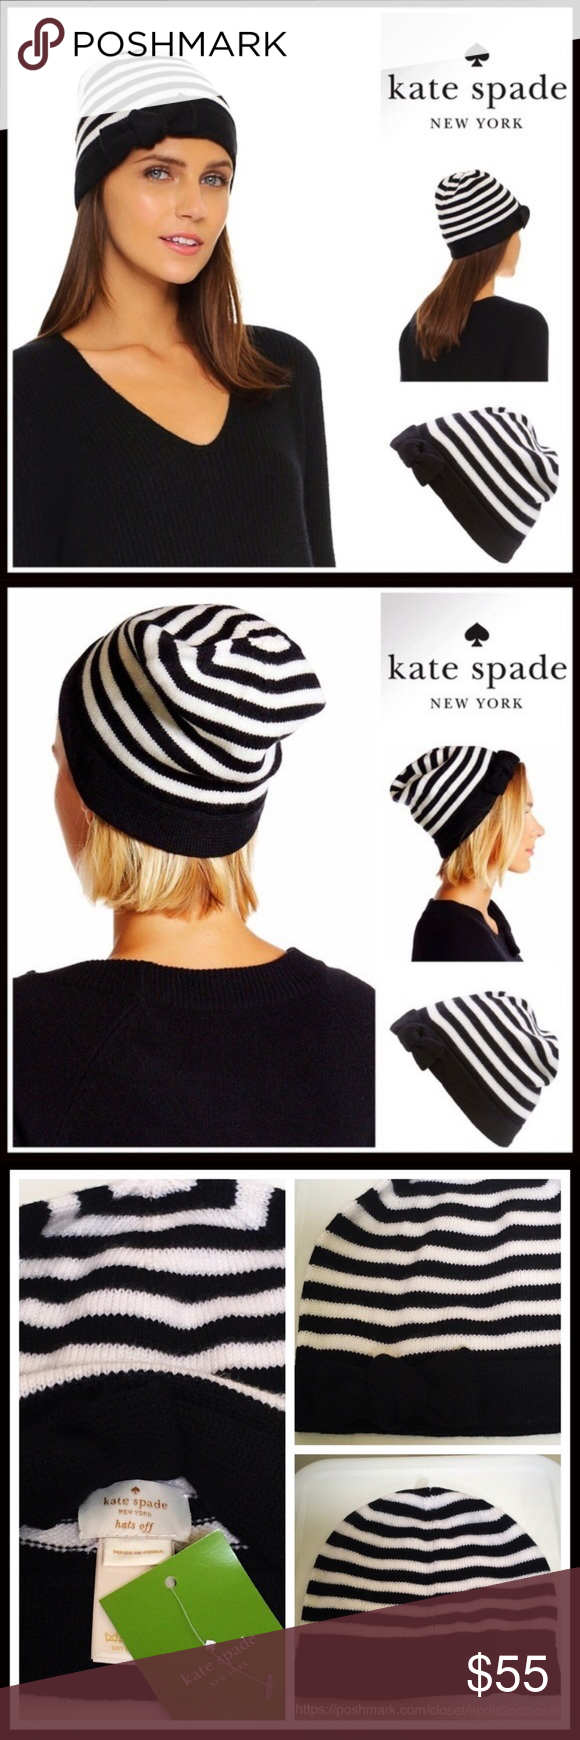 3ac3fc4f9d170 KATE SPADE STRIPE BOW BEANIE HAT KATE SPADE SIGNATURE STRIPED WHITE BLACK  BOW BEANIE NEW WITH TAGS DETAILS   Super soft striped knit construction    Rib trim ...